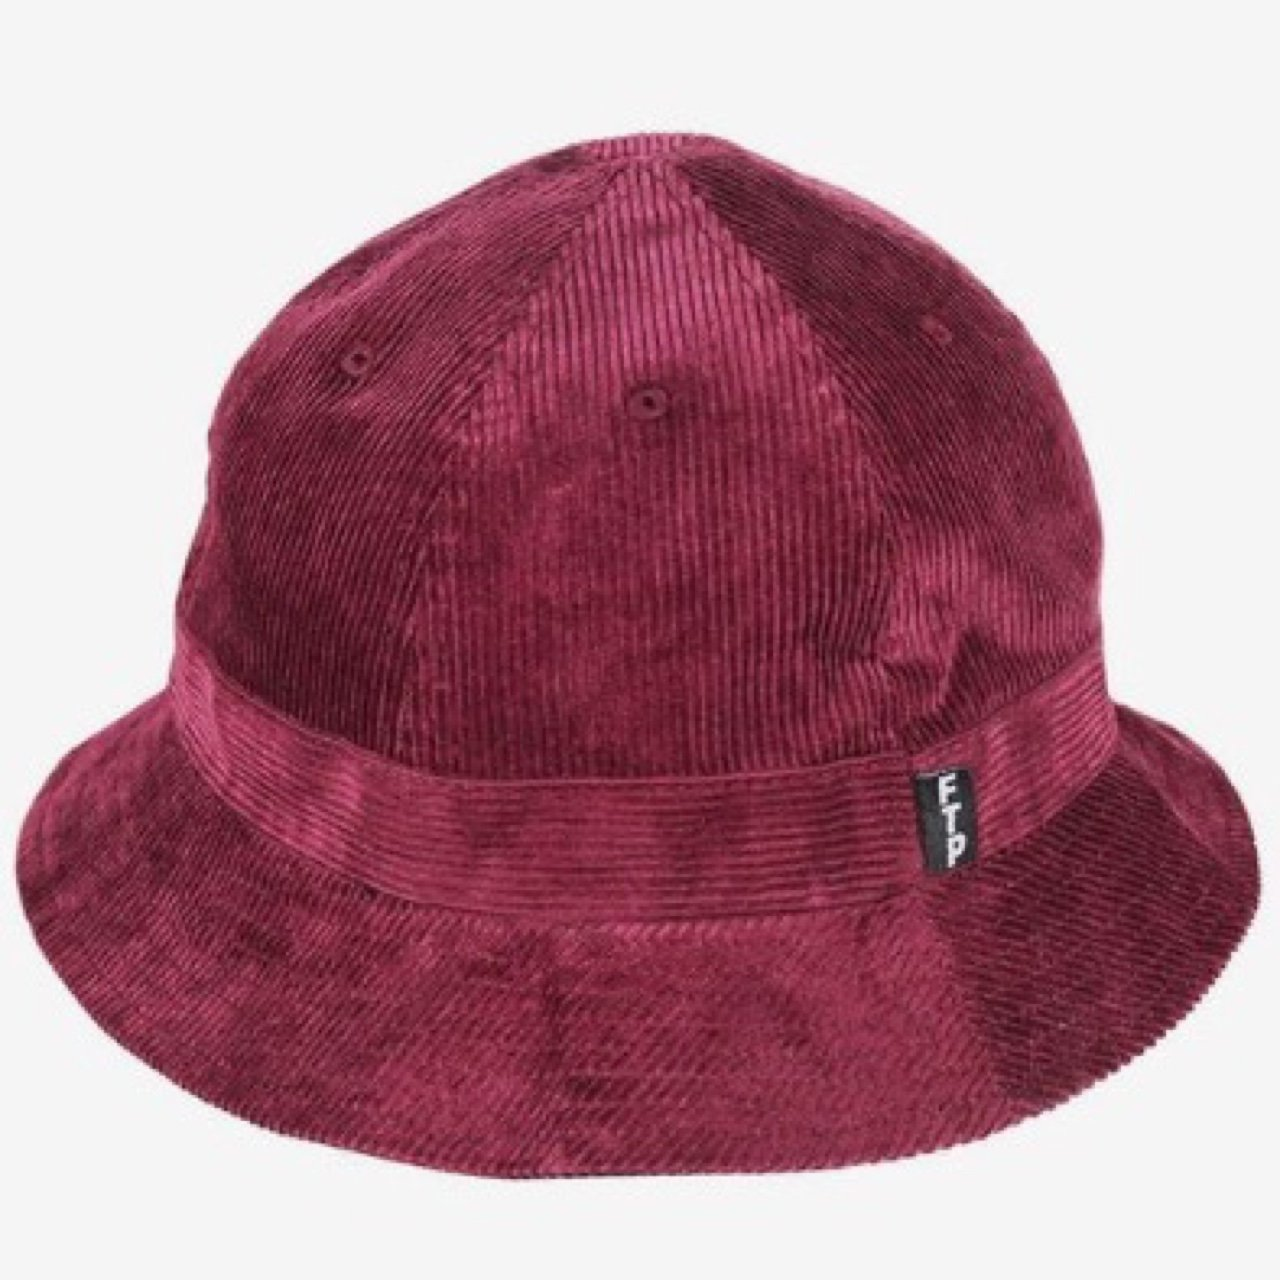 34fee9675d6 FTP reversible cord bucket hat